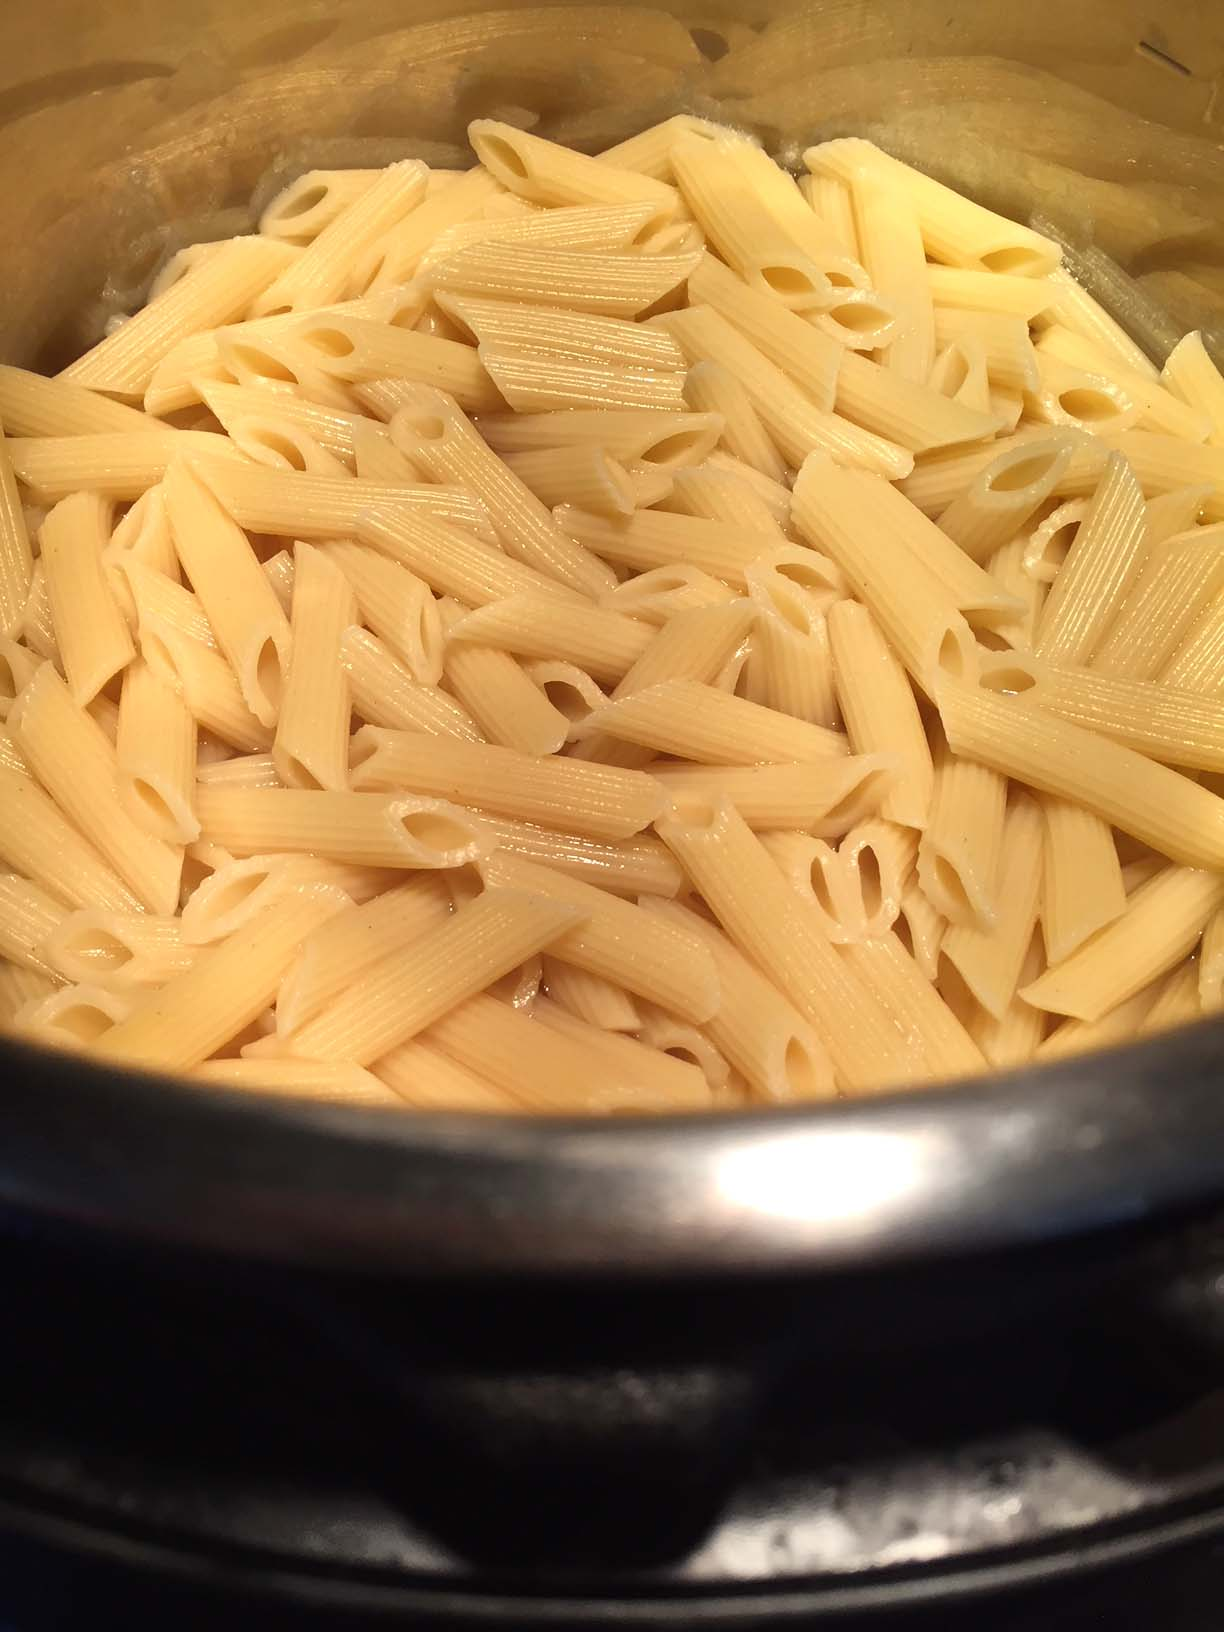 Can you cook egg noodles in instant pot